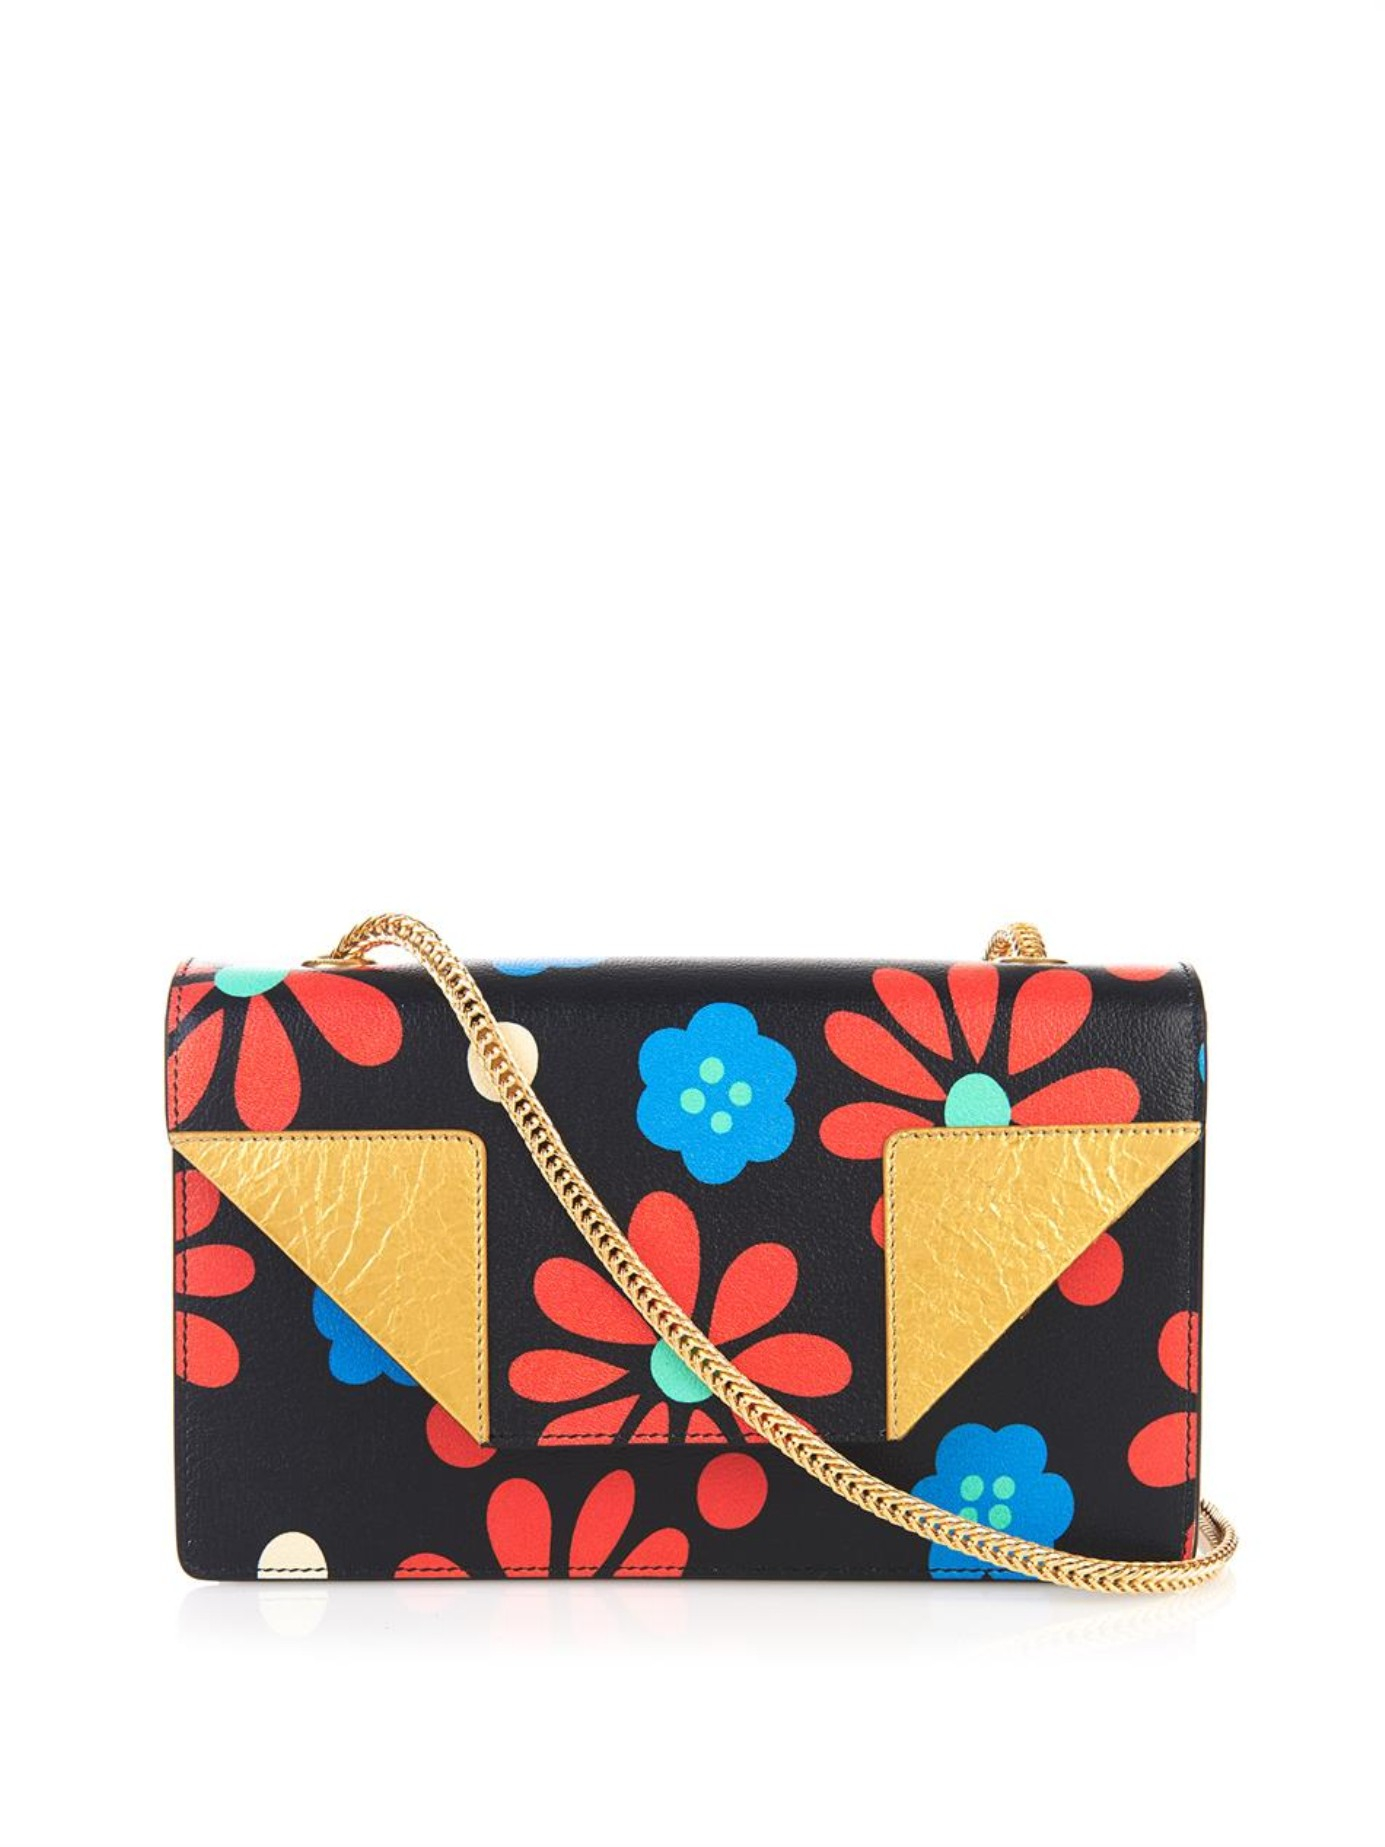 Monogram Small Prairie Flower Clutch Bag, Black Multi